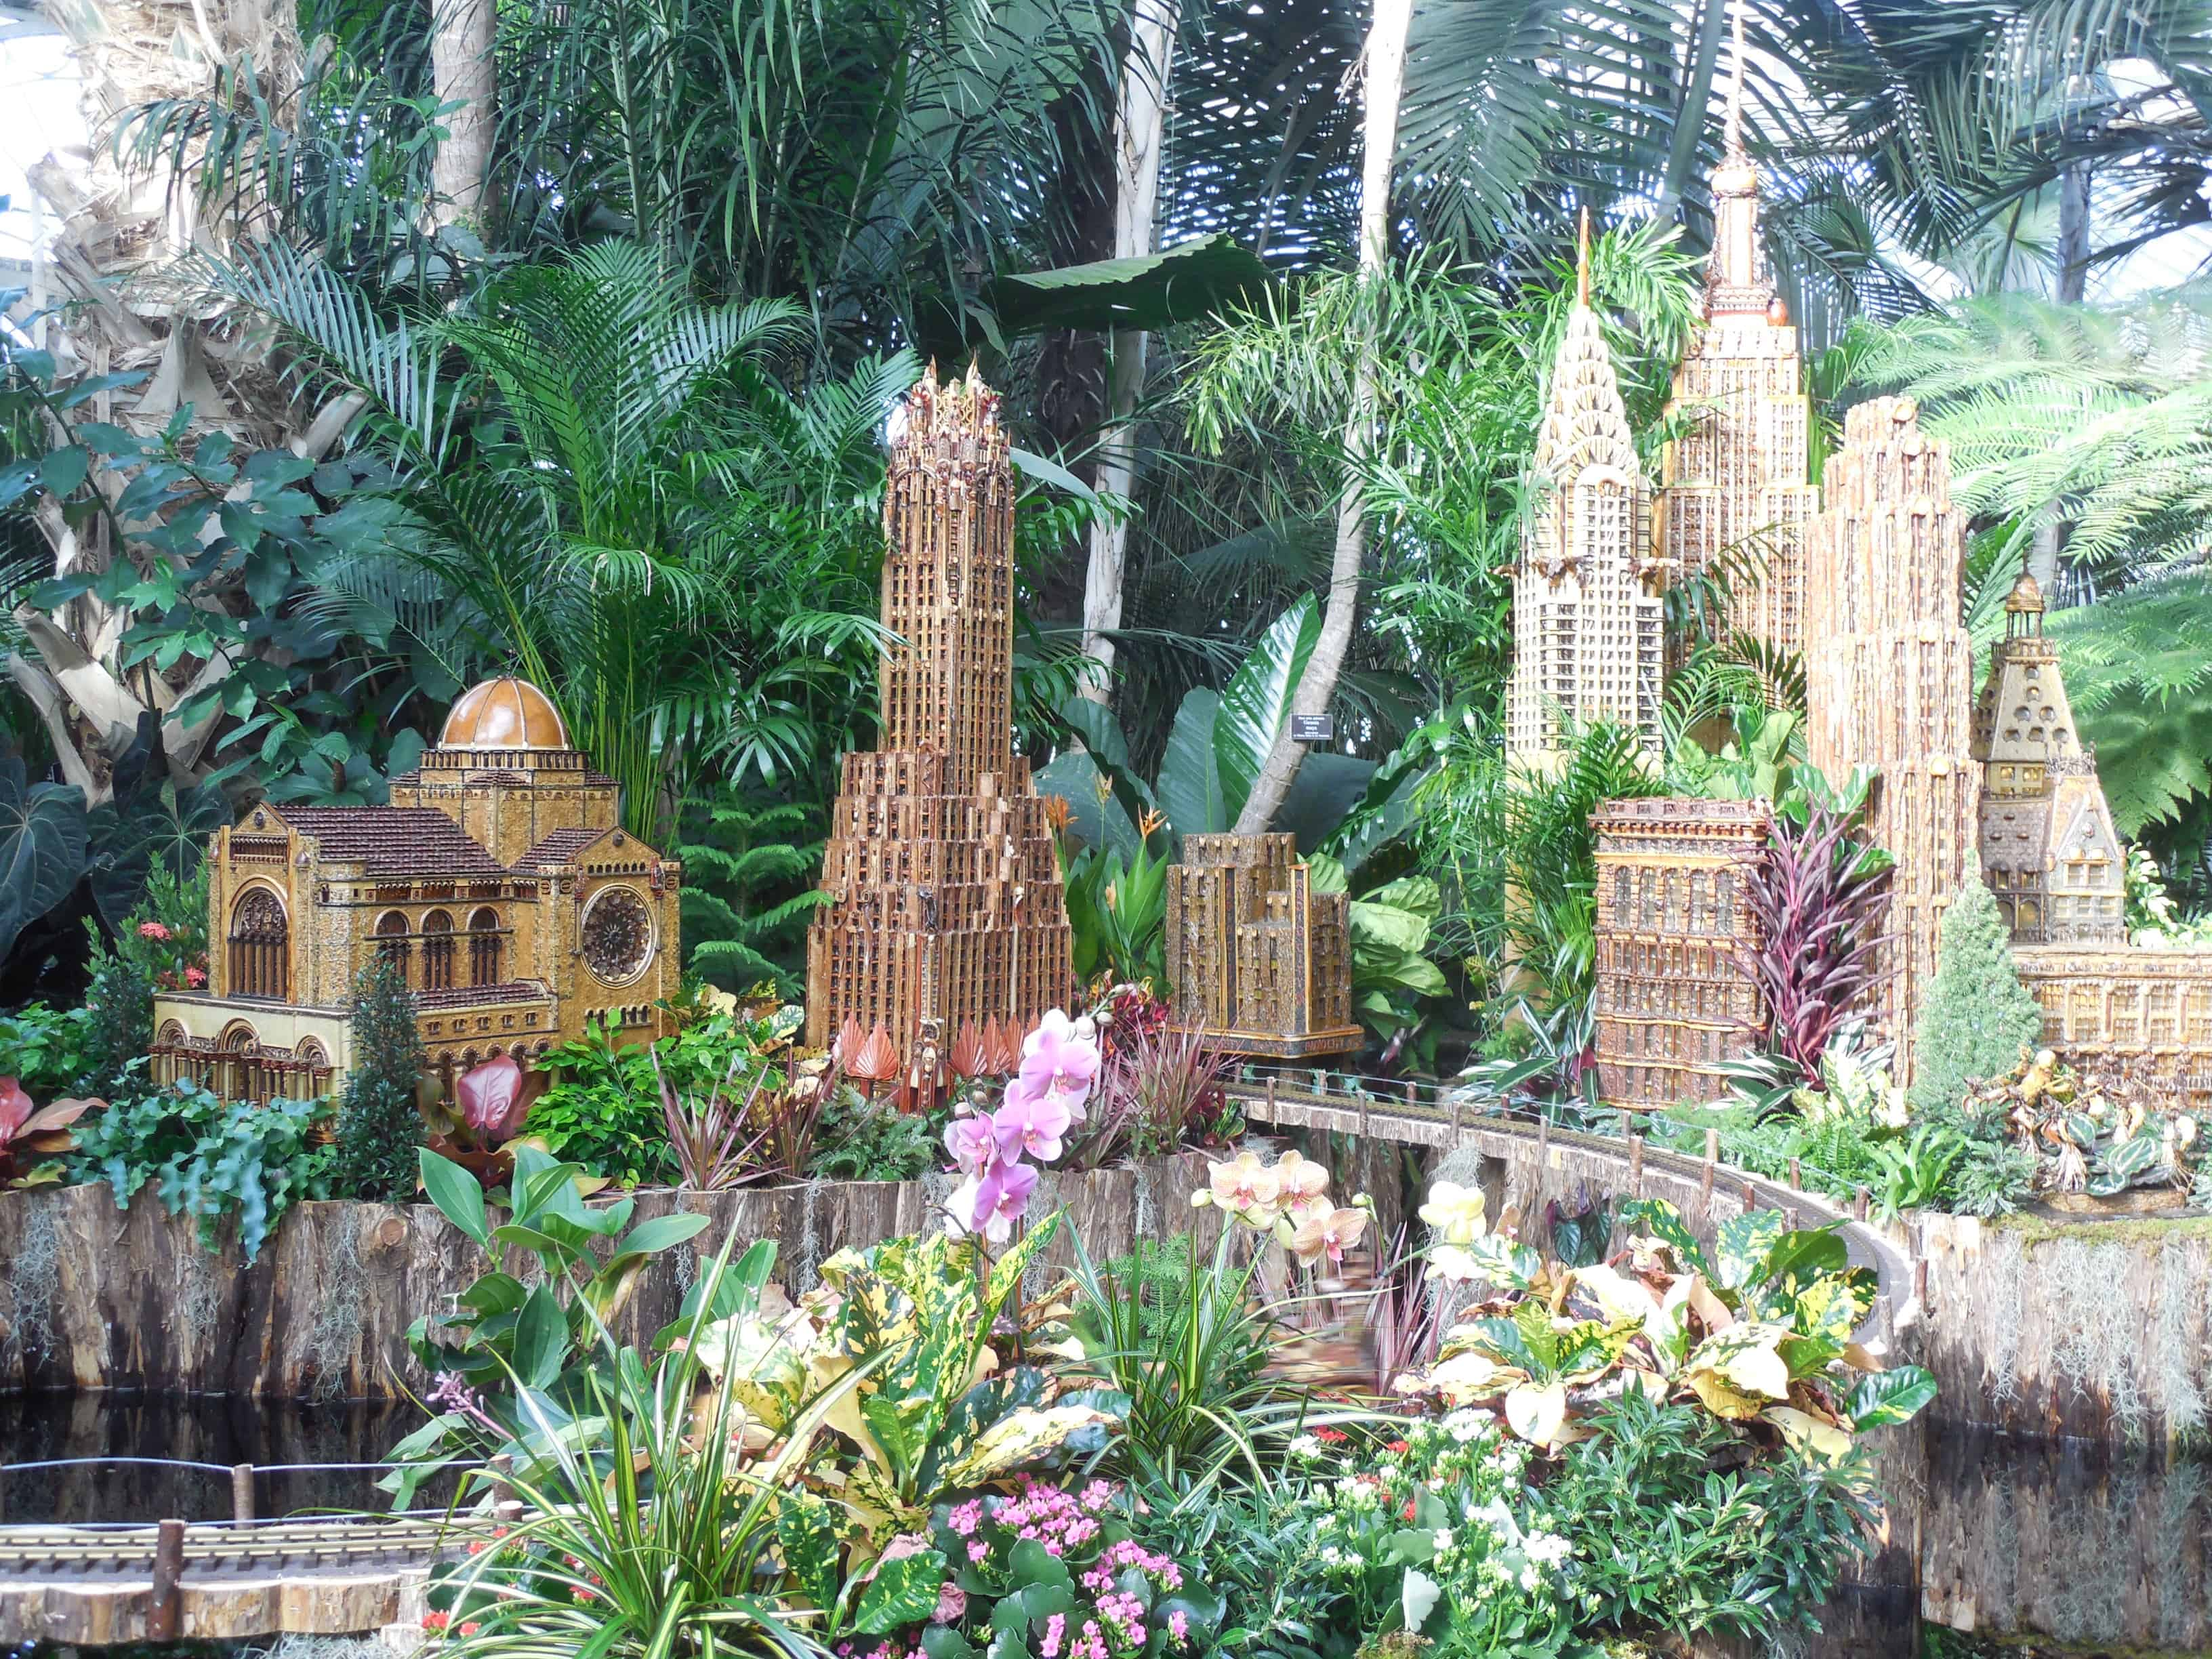 New York Botanical Gardenu0027s Holiday Train Show U2013 A Popular Holiday Tradition